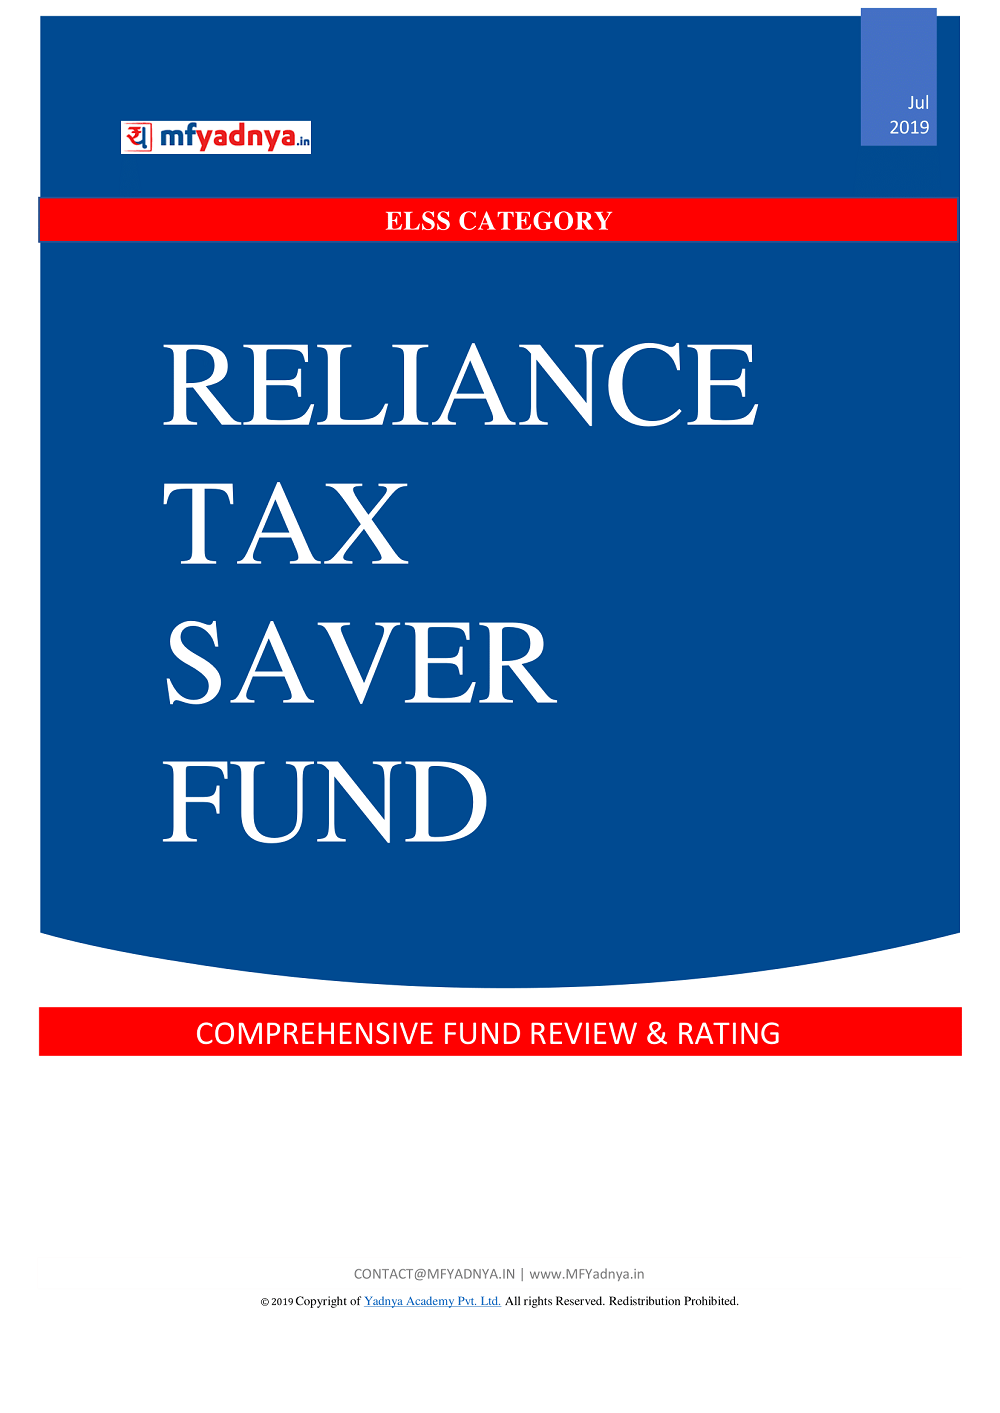 ELSS (Tax Saver) Category - Reliance Tax Saver Fund Detailed Analysis & Review based on July 31st, 2019 data. Most Comprehensive and detailed review based on Yadnya's proprietary methodology of Green, Yellow & Red Star.